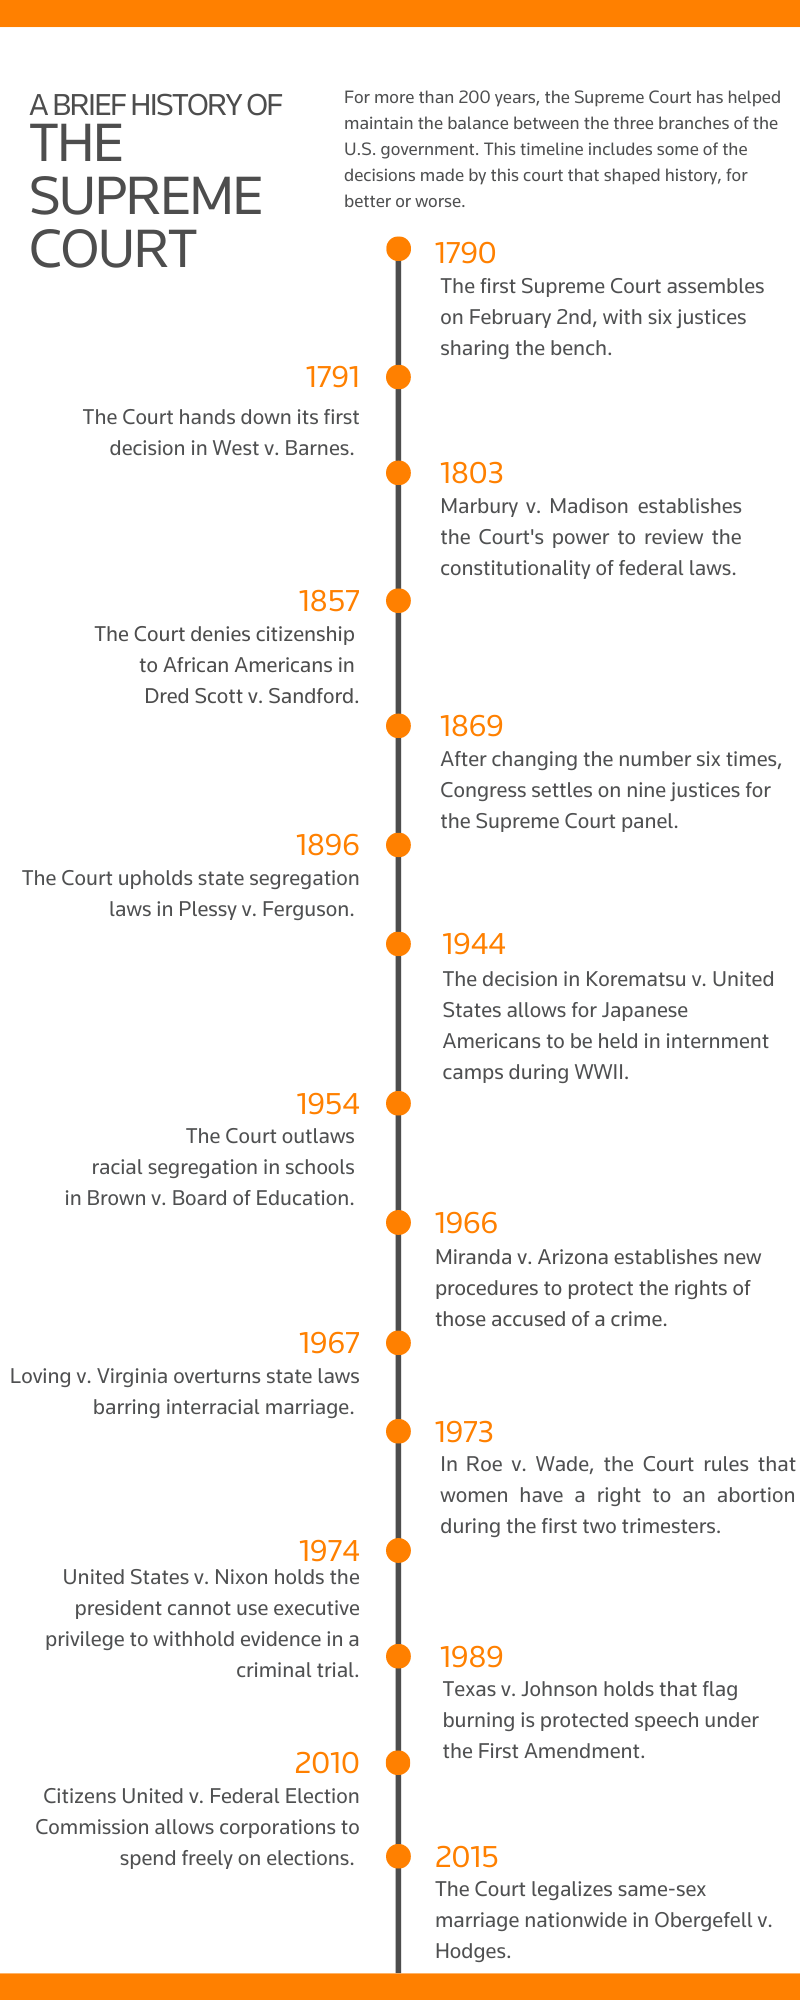 A timeline of important events in the history of the United States Supreme Court, described in detail below